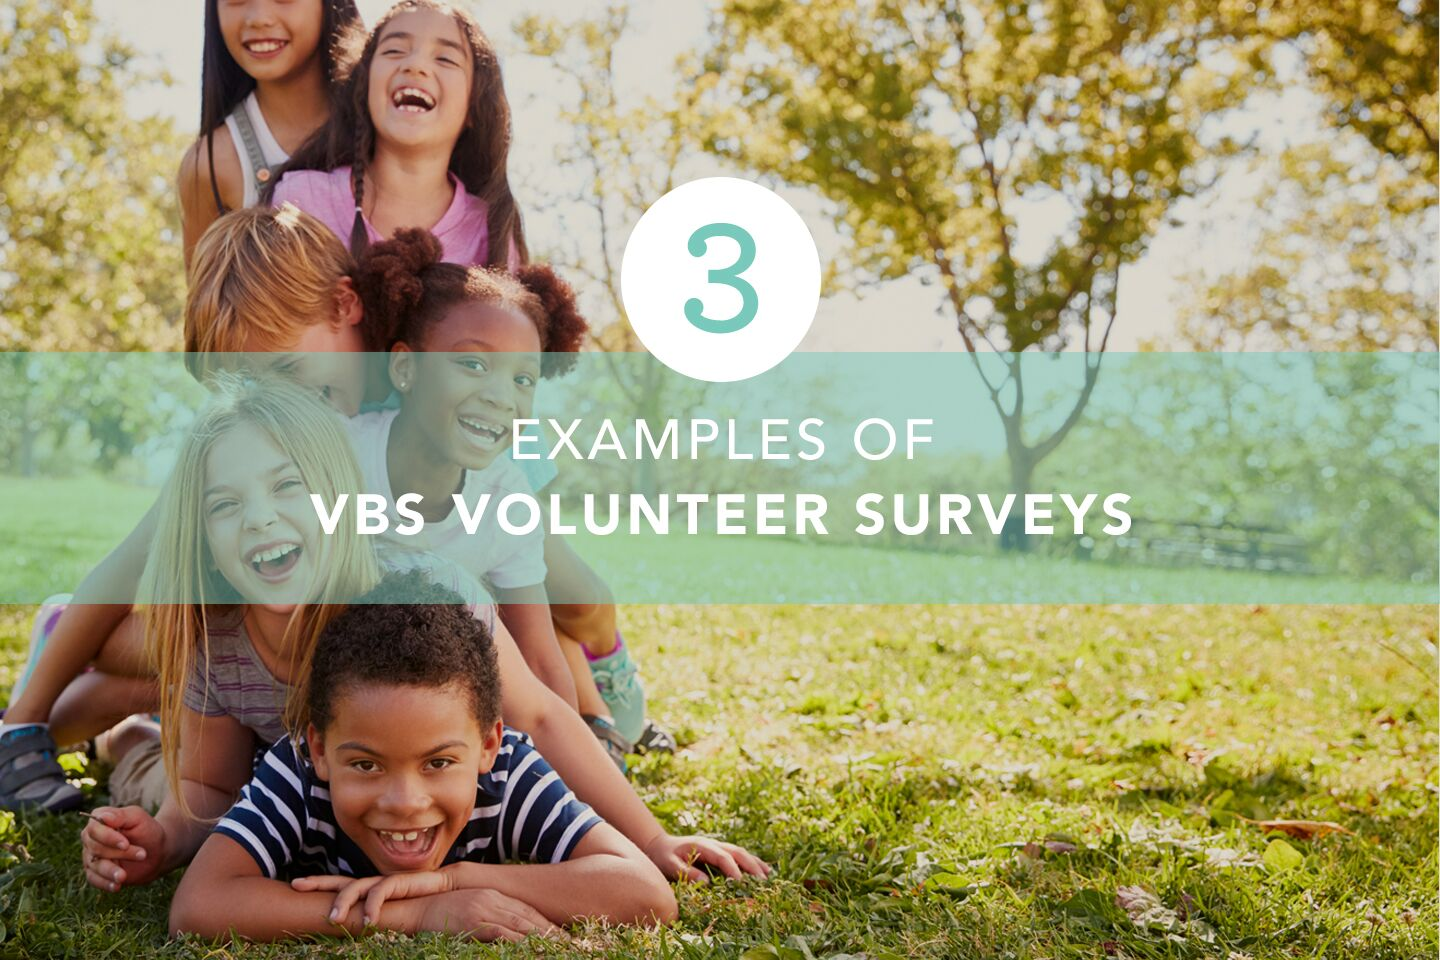 VBS Volunteer Feedback to Improve for Next Year